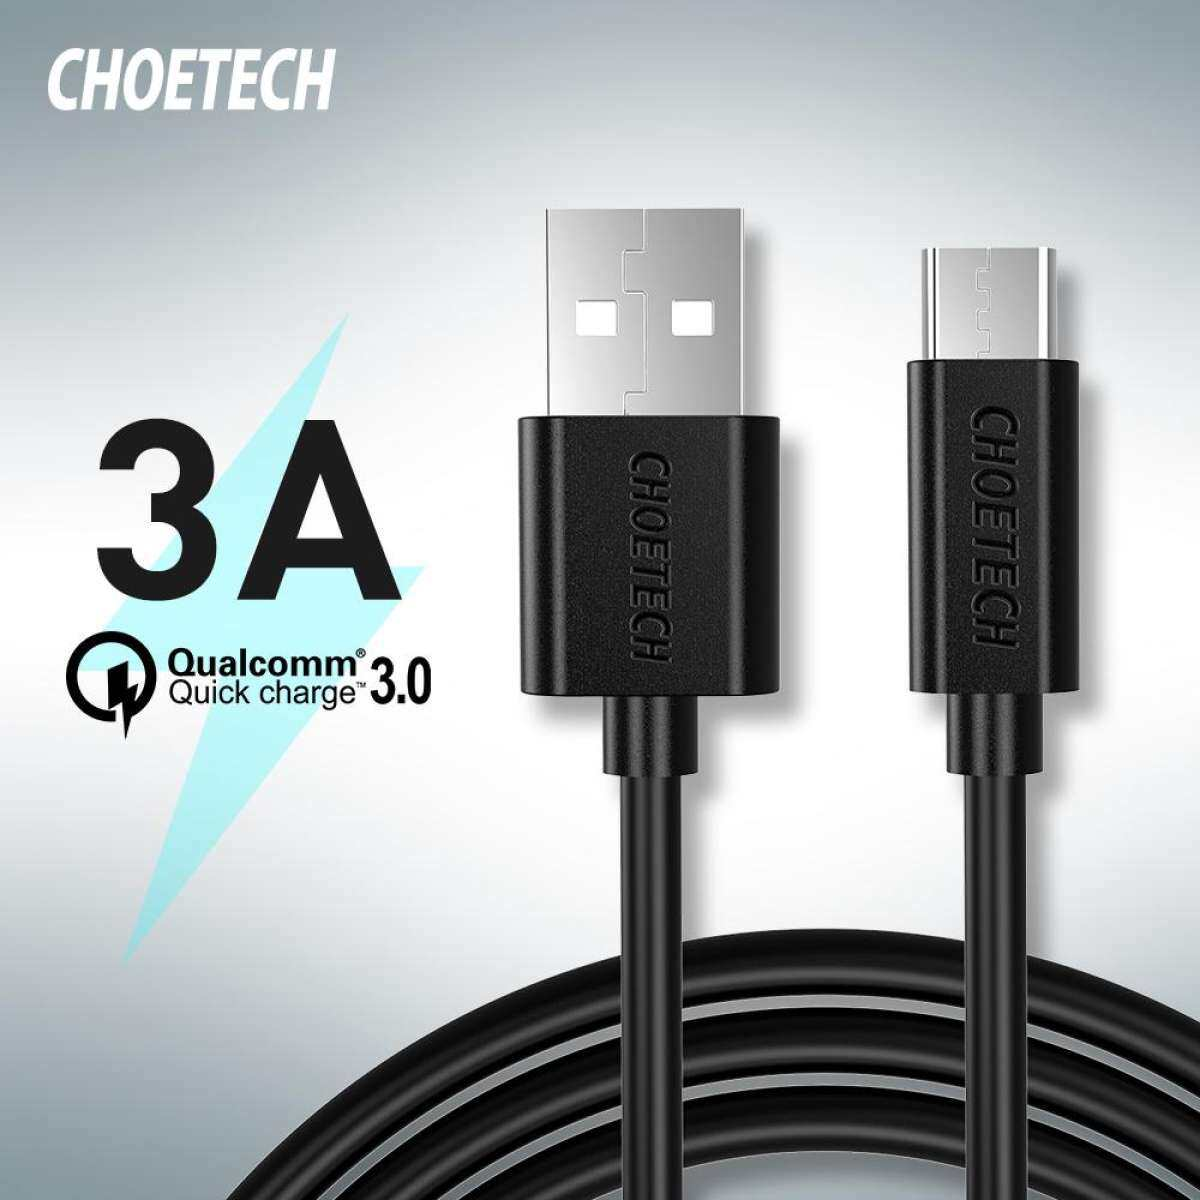 CHOETECH USB C Cable USB C Fast Charging Cable Compatible with  Macbook Air, iPad Pro, Macbook Pro, Google Pixel 3/3XL /Pixel 2 XL, Nexus 5X/6P and More